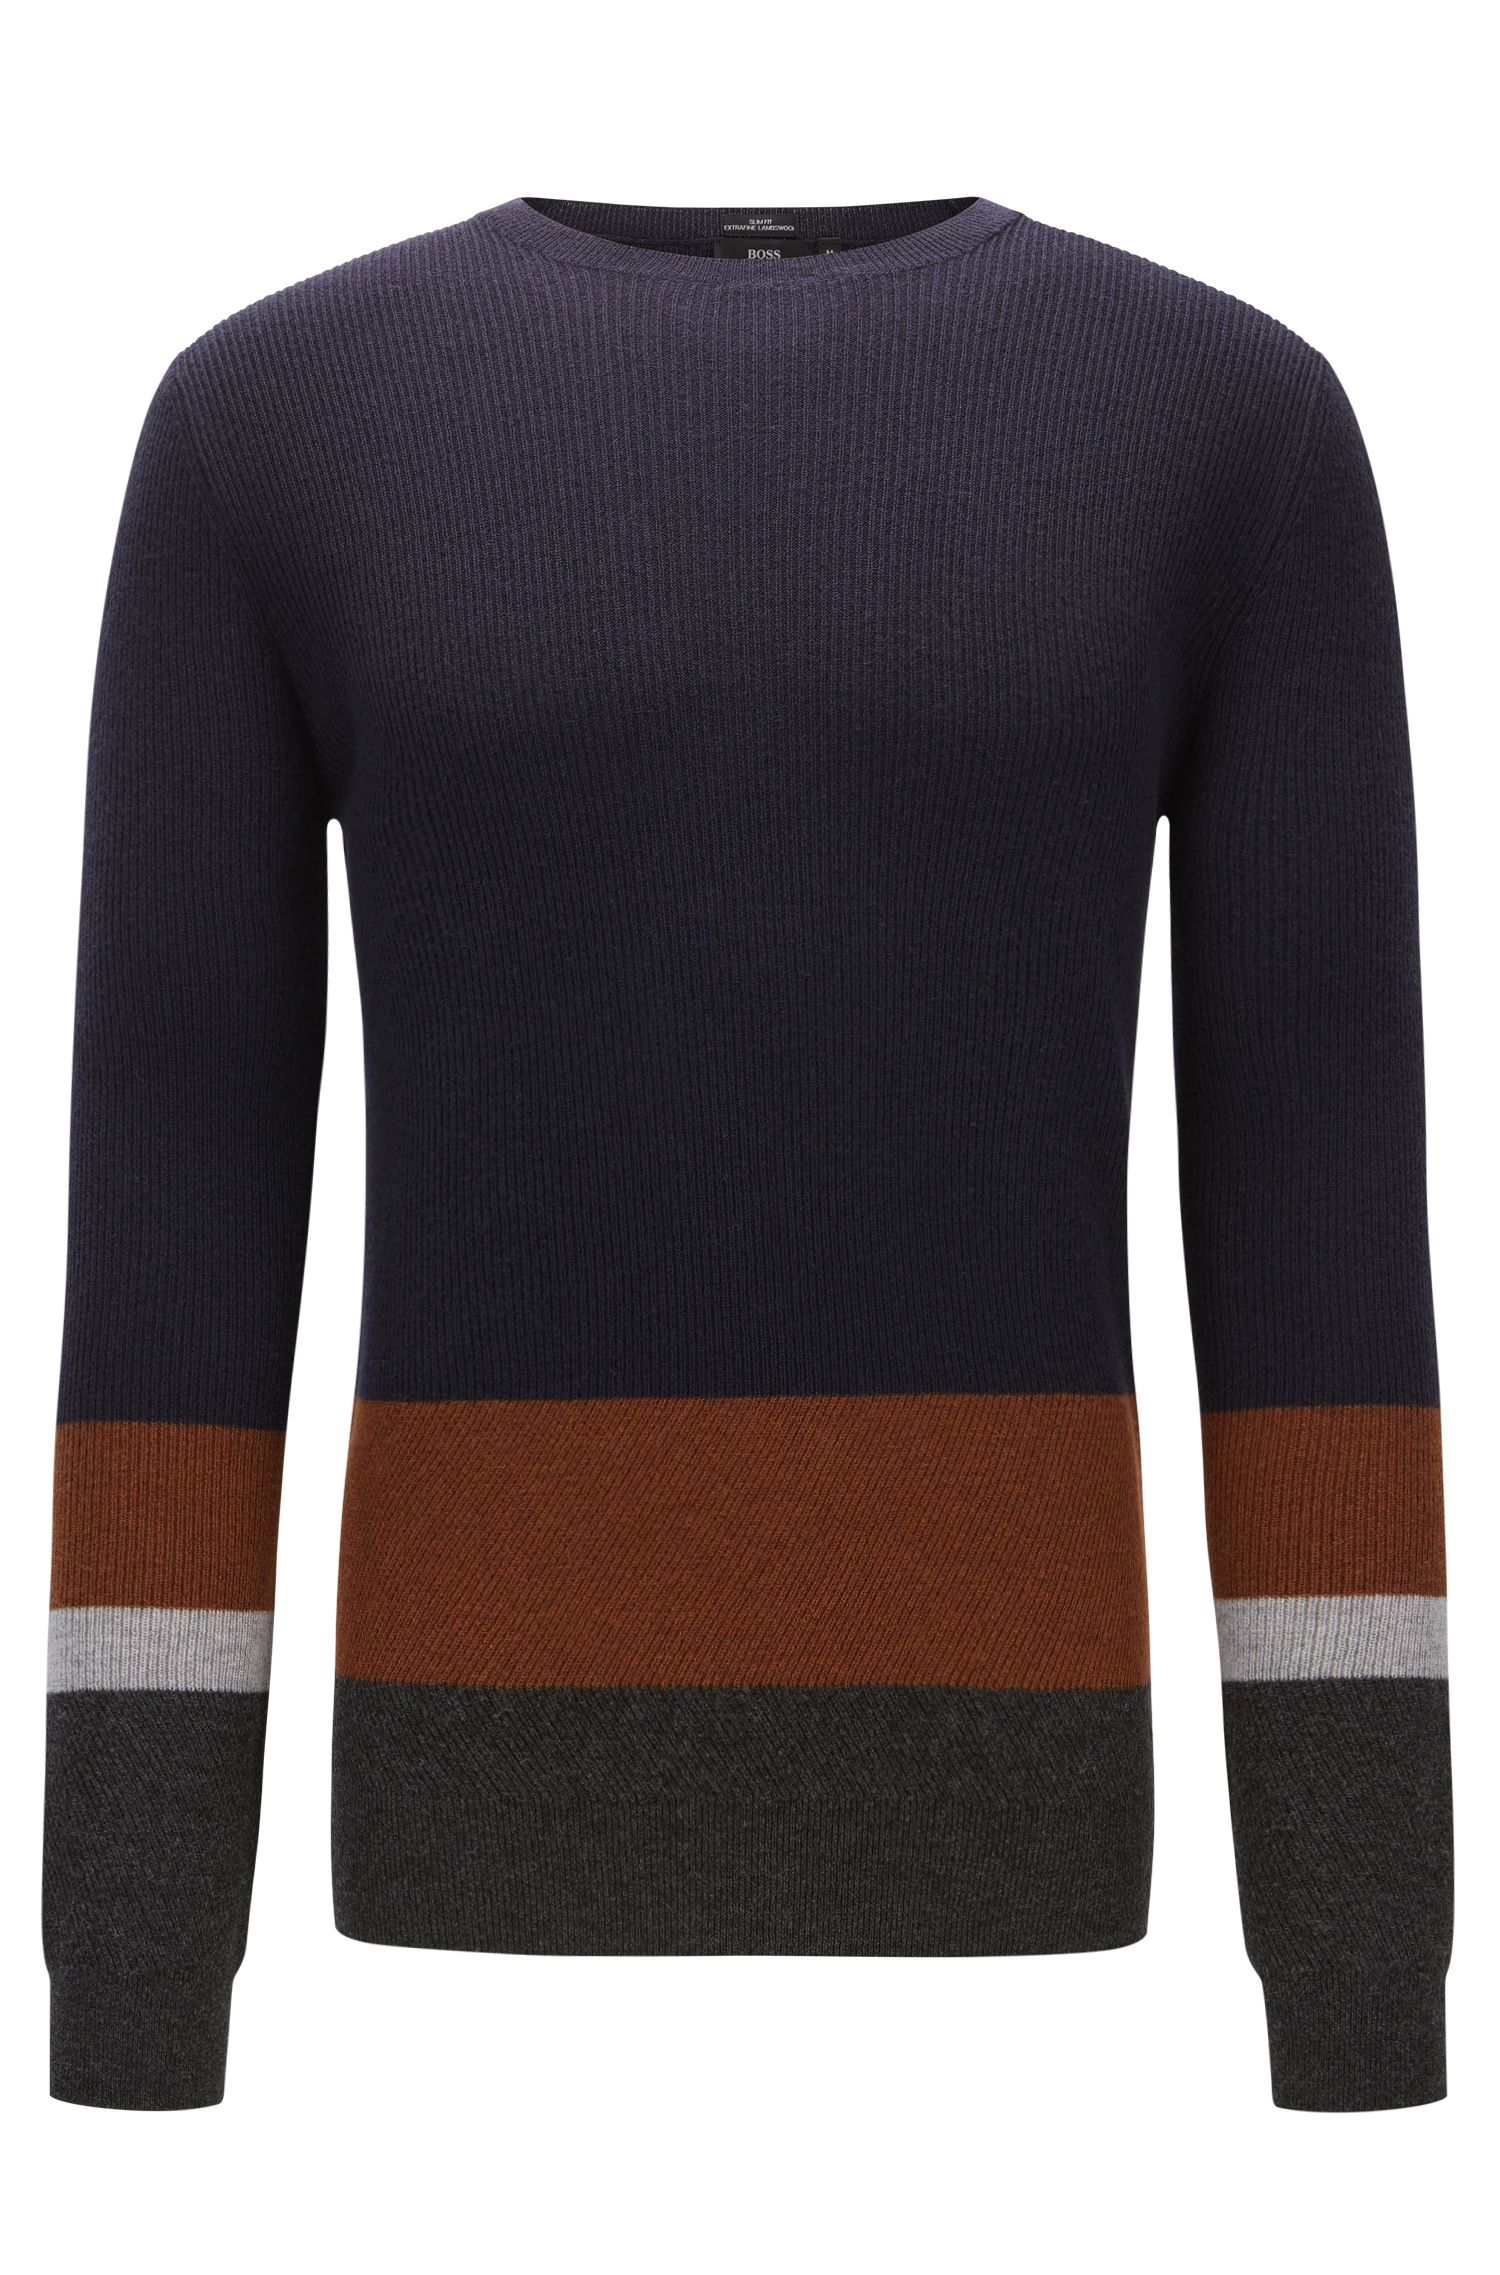 Colorblocked Virgin Wool Sweater | Nemon